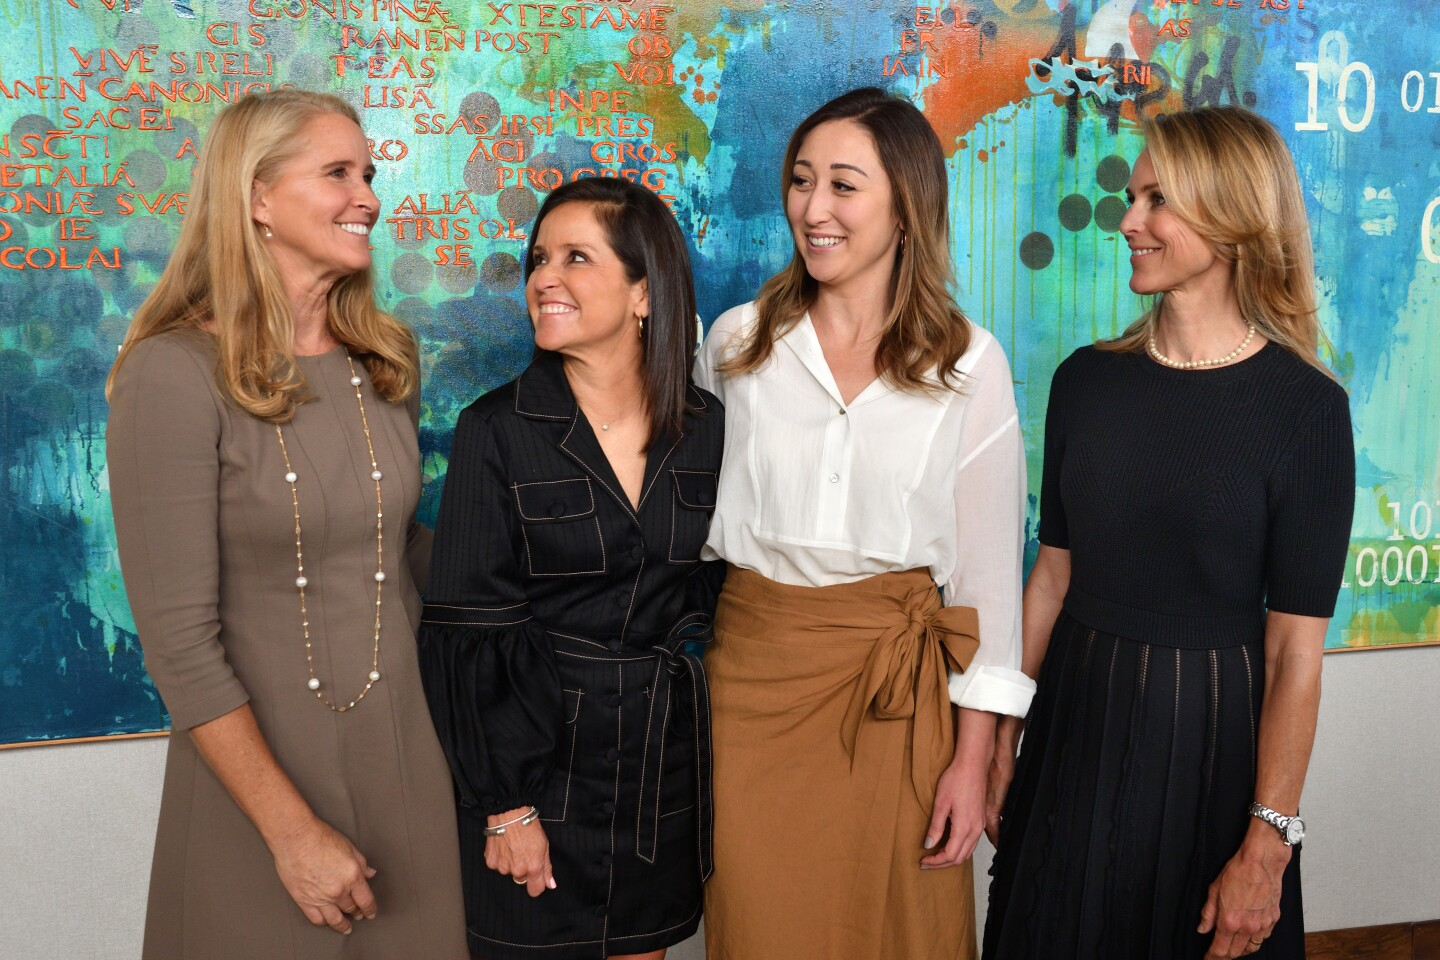 New St. Germaine President Katie Christensen (second from right) with Wendy Neri, Stefanie Bedingfield and Bronwyn Jarvis